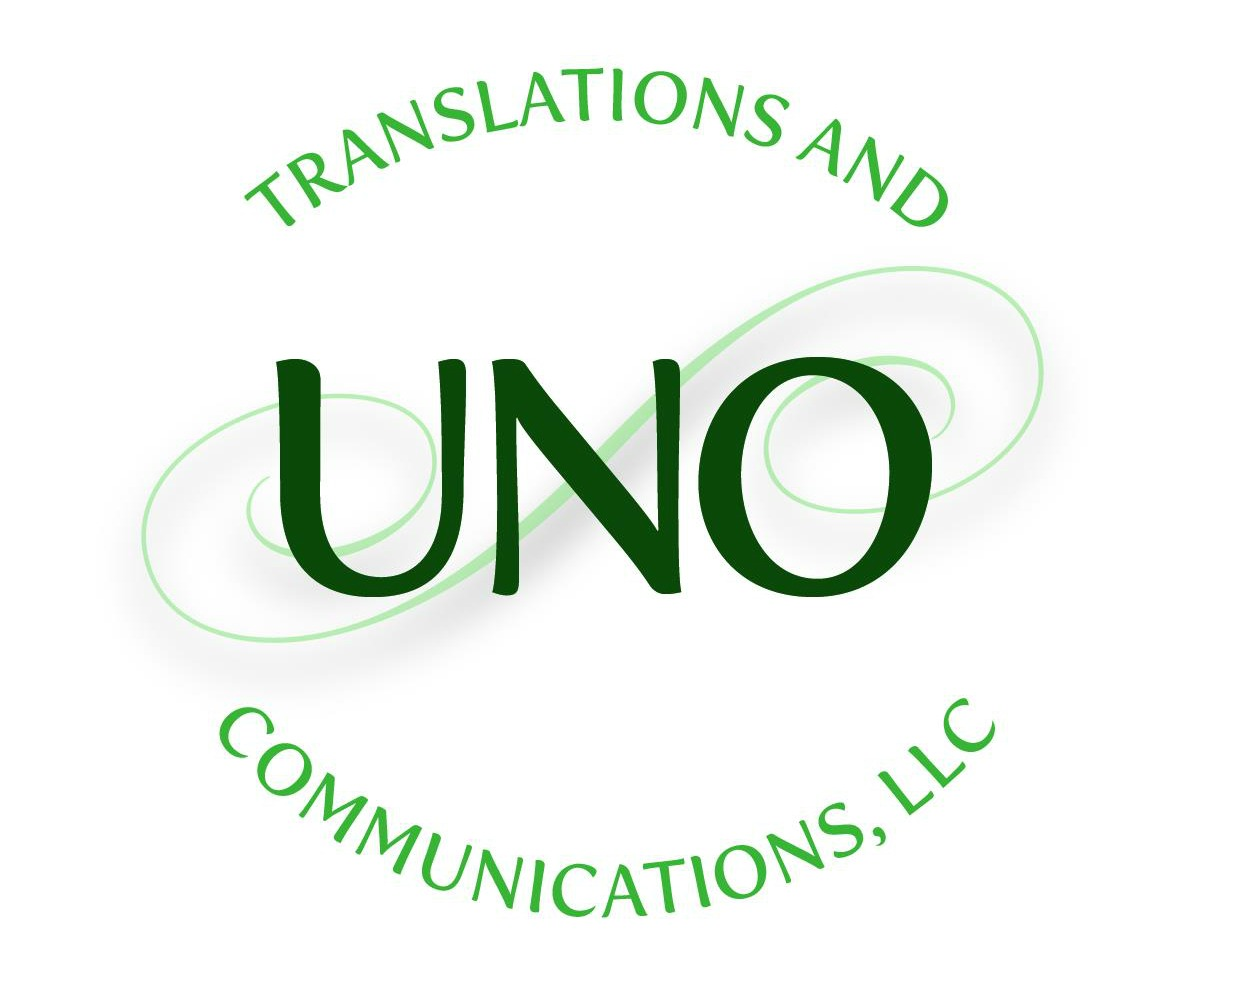 UNO-translations-communications